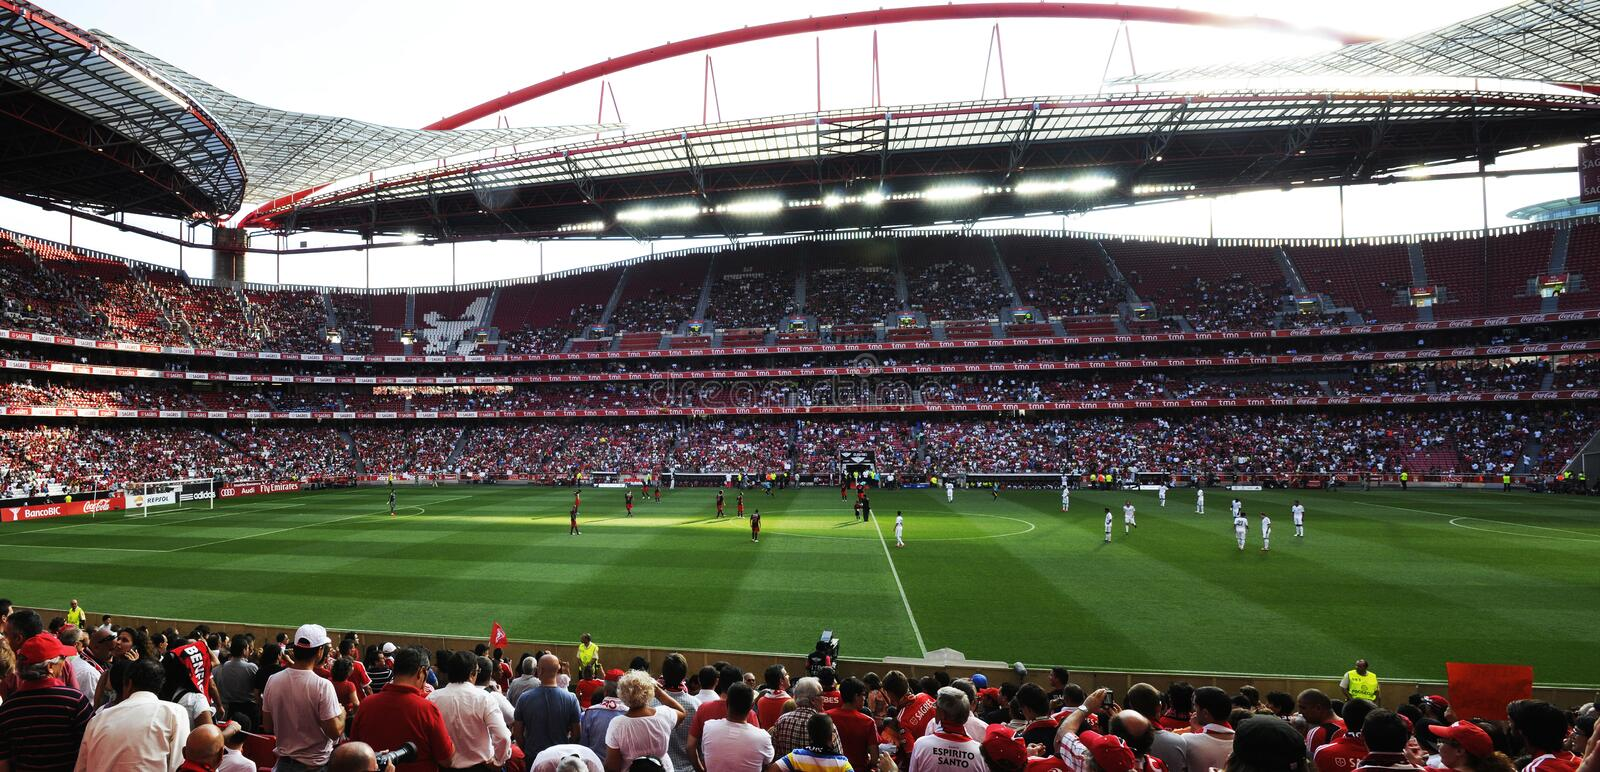 Benfica Soccer Stadium Panorama, Football Fans, Europe royalty free stock images